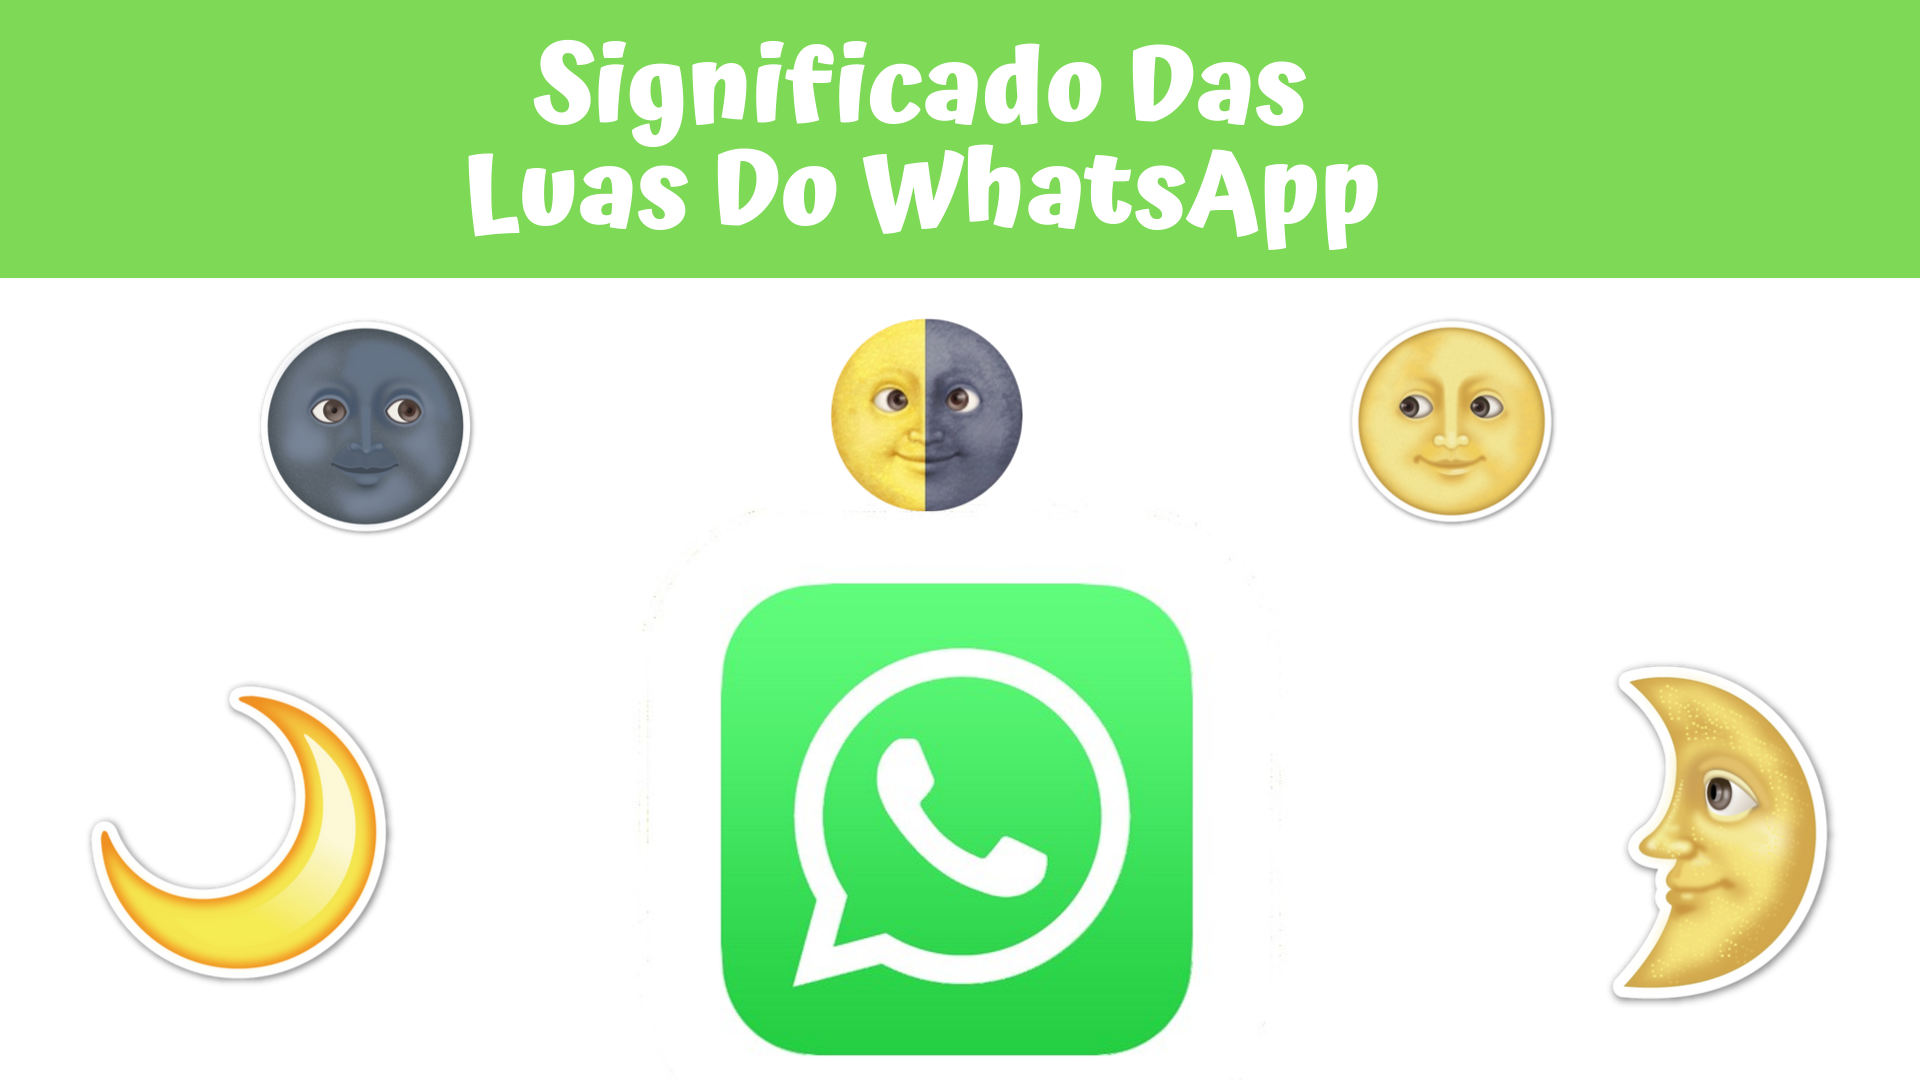 ▷ Descubra o Significado Das Luas Do WhatsApp! 🌚